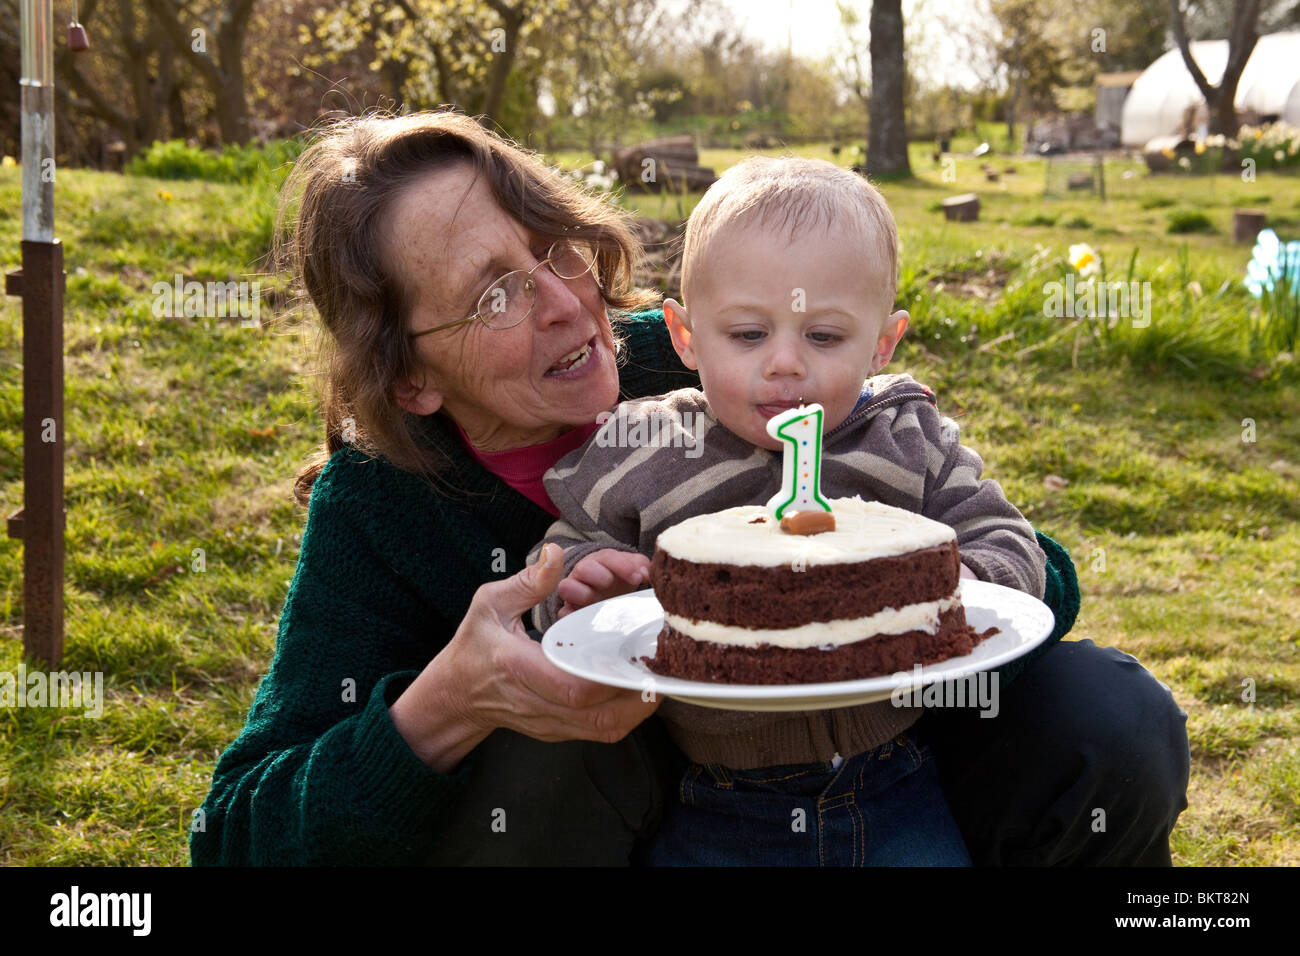 One Year Old Baby Boy Outside With His Birthday Cake And Grandmother